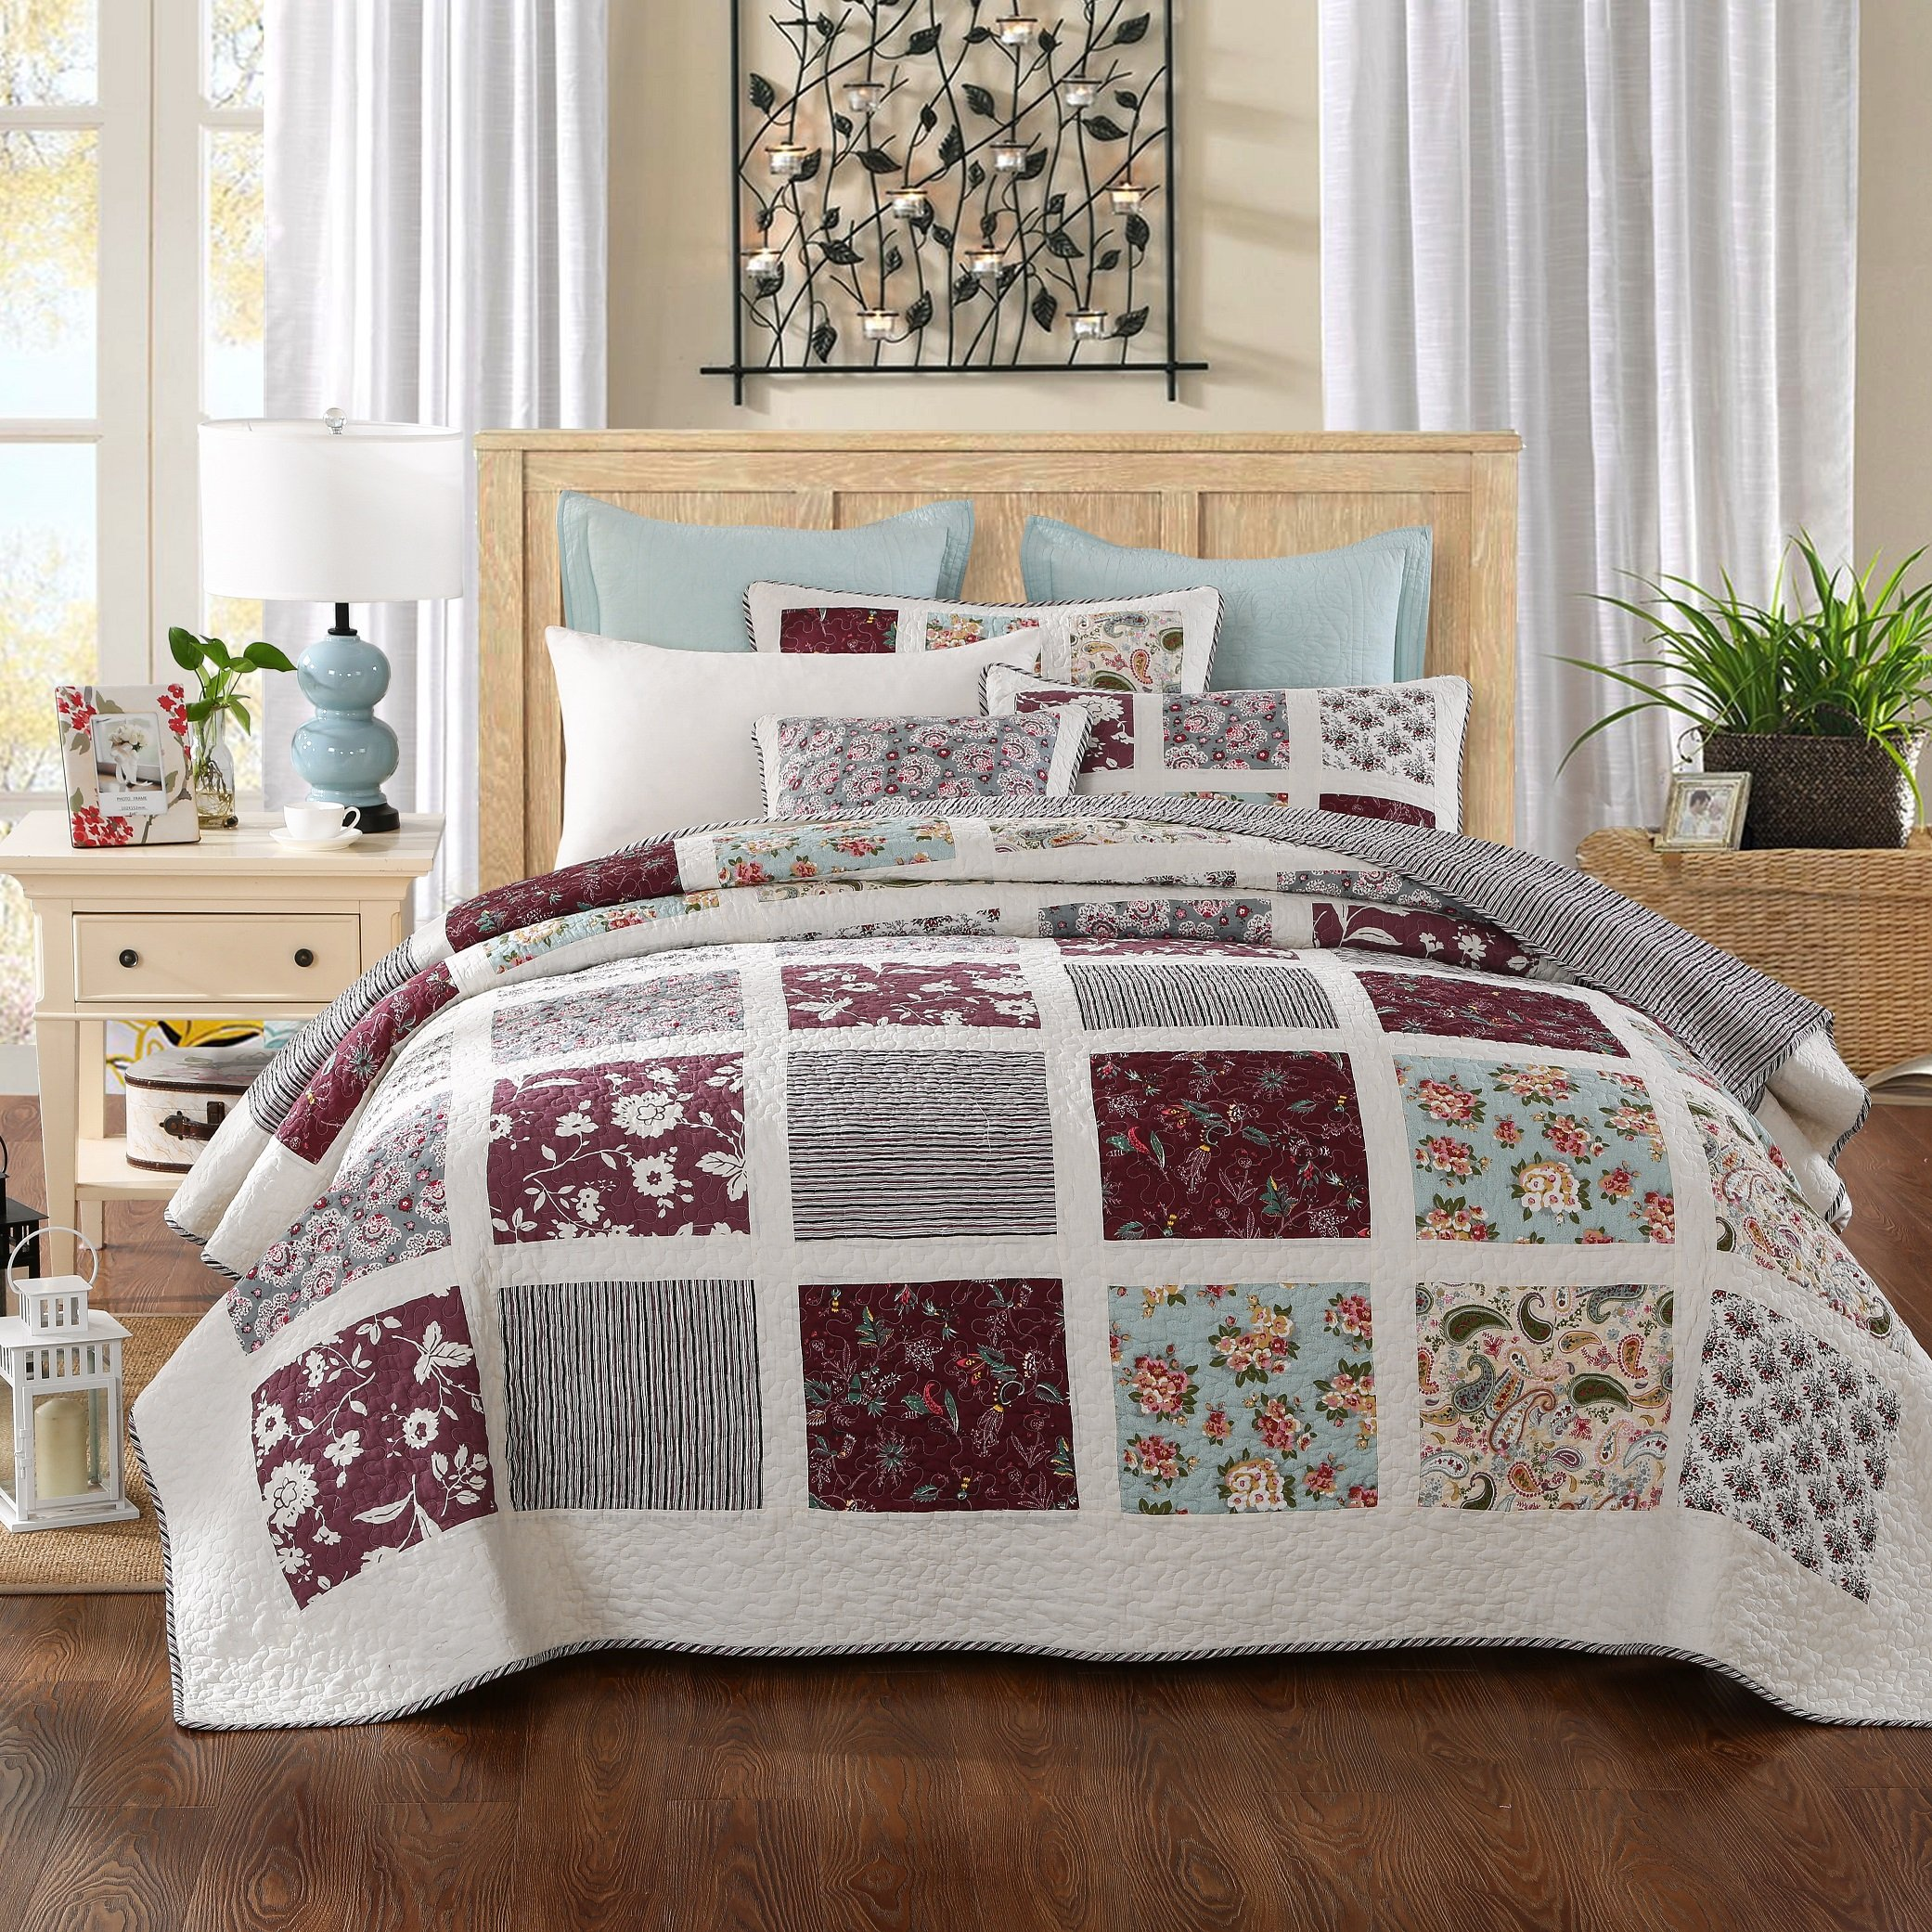 DaDa Bedding Festive Merlot Burgundy Bohemian Reversible Cotton Real Patchwork Quilted Coverlet Bedspread Set - Bright Vibrant Floral Paisley & Striped Backside Colorful White Print - Twin - 2-Pieces